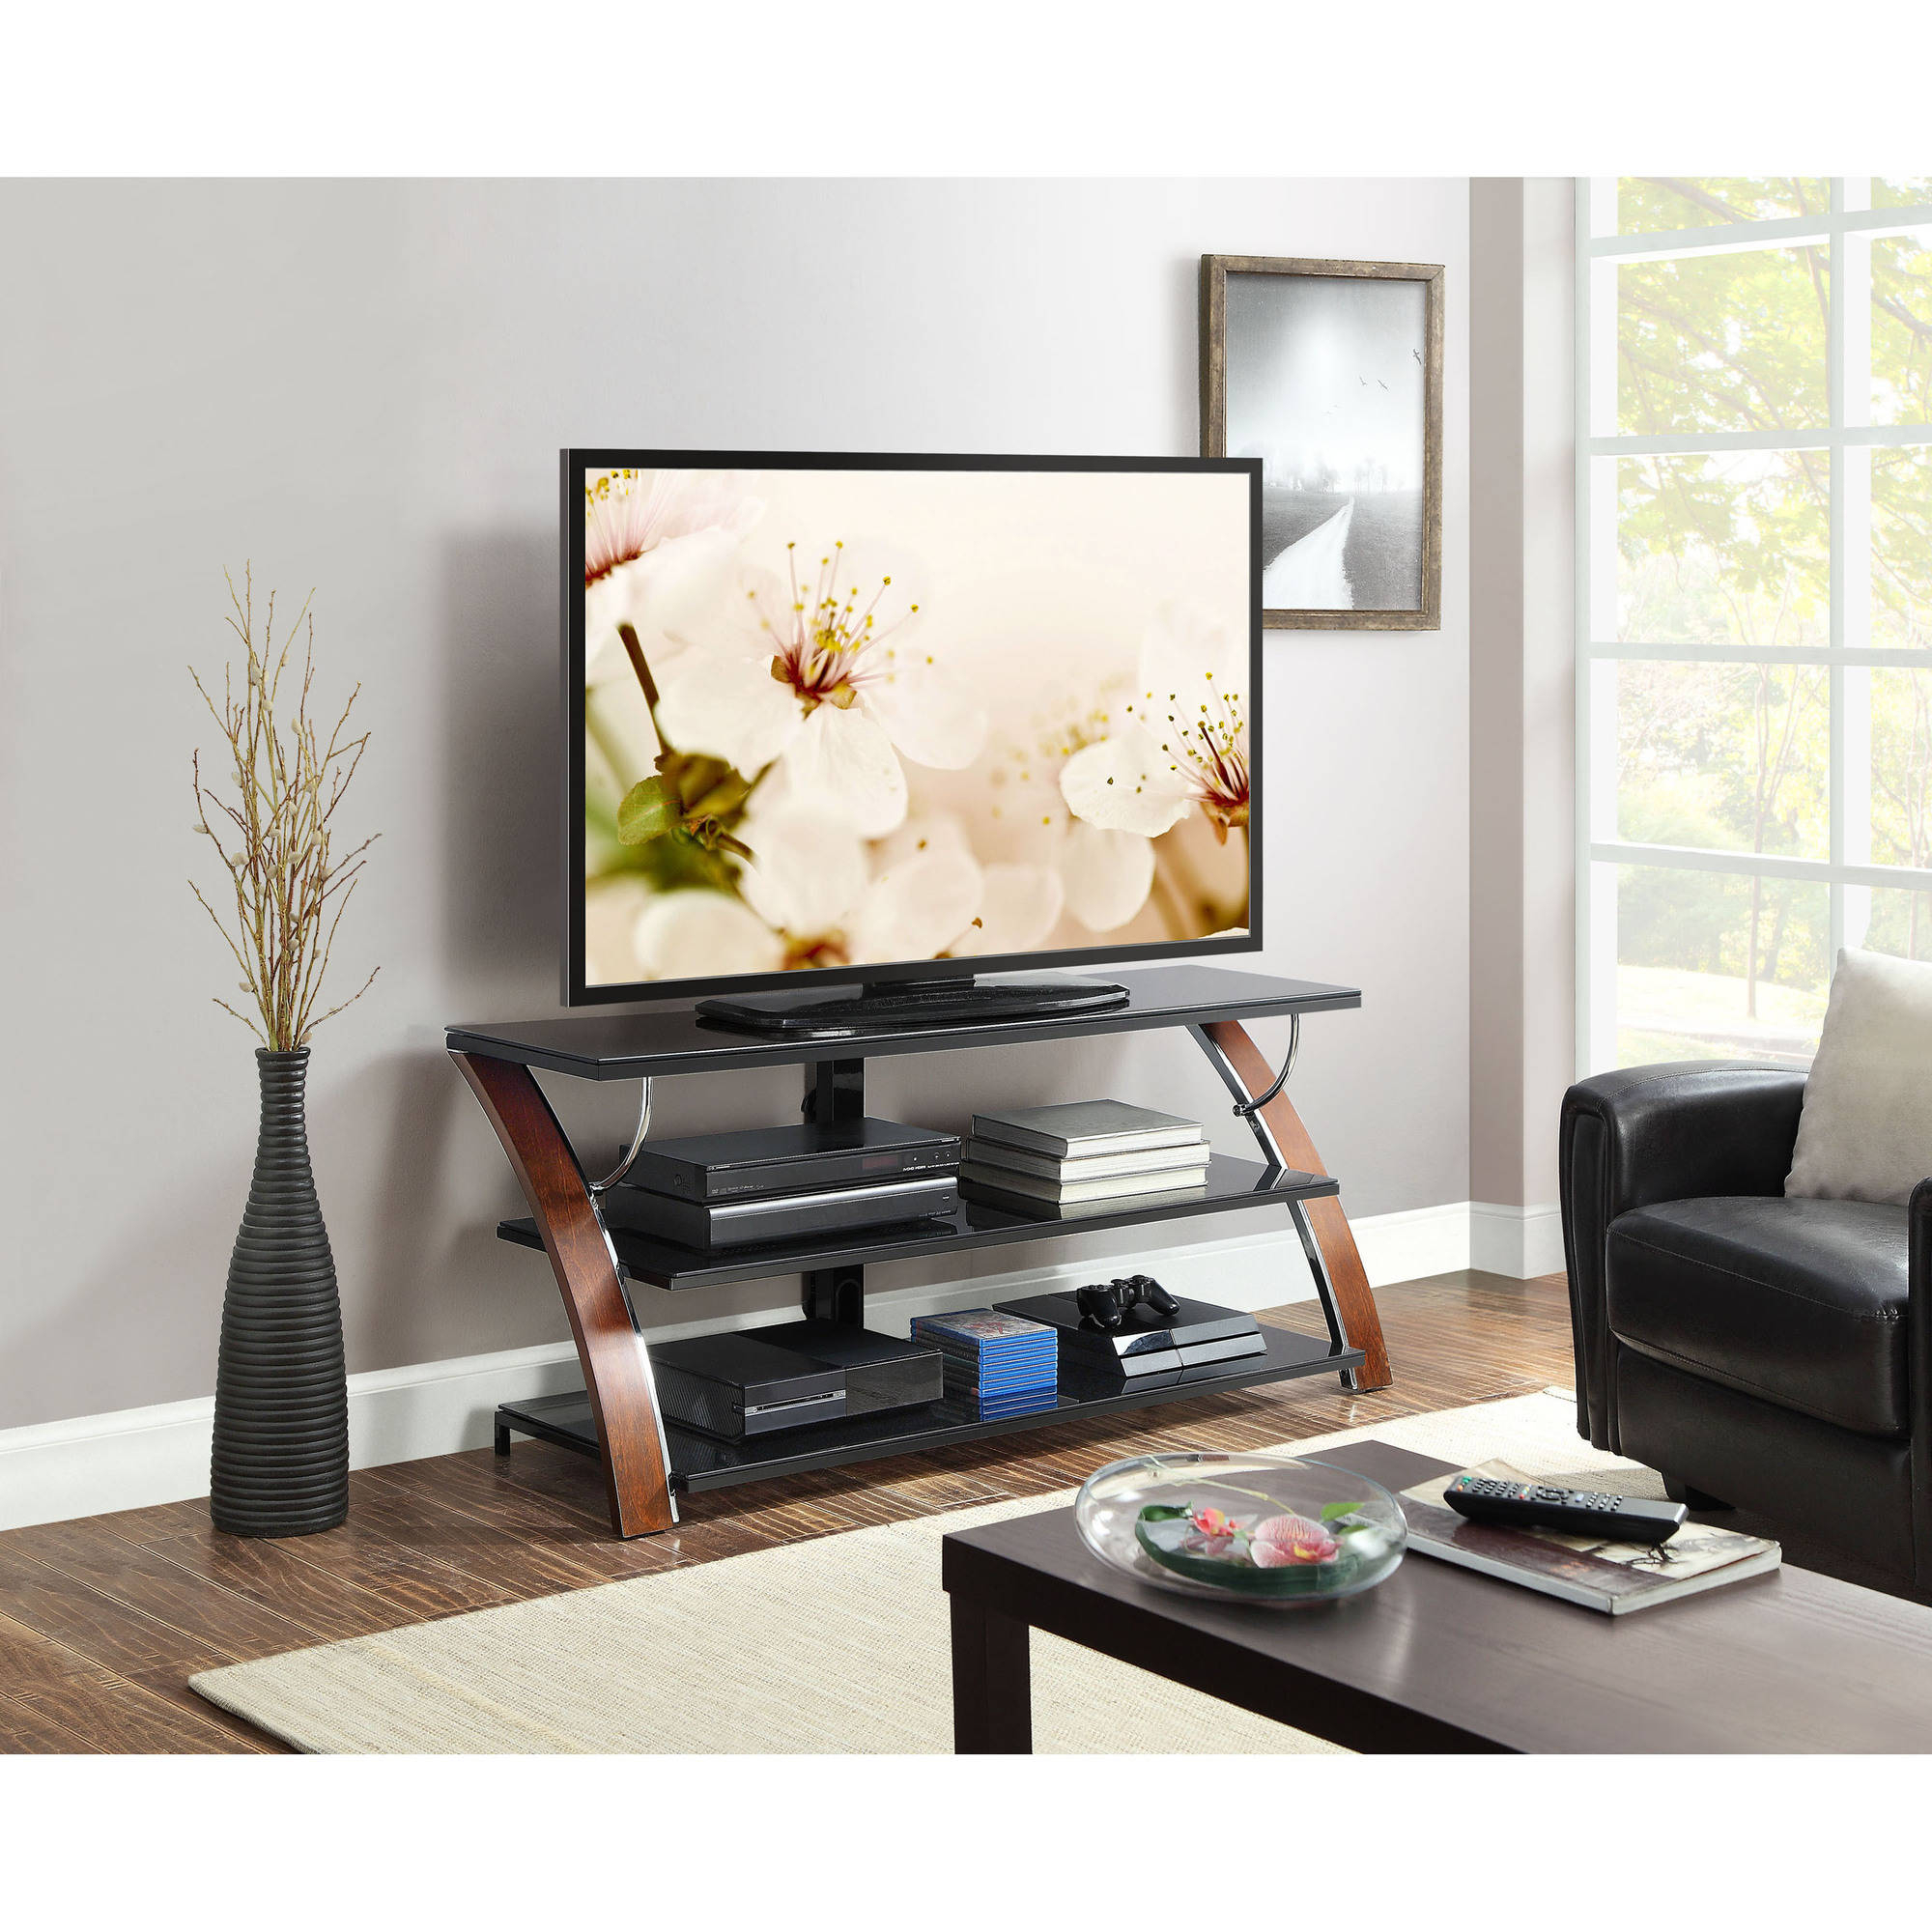 Whalen Payton Brown Cherry 3 In 1 Flat Panel Tv Stand For Tvs Up To Pertaining To Most Recently Released Modern Tv Cabinets For Flat Screens (View 20 of 20)